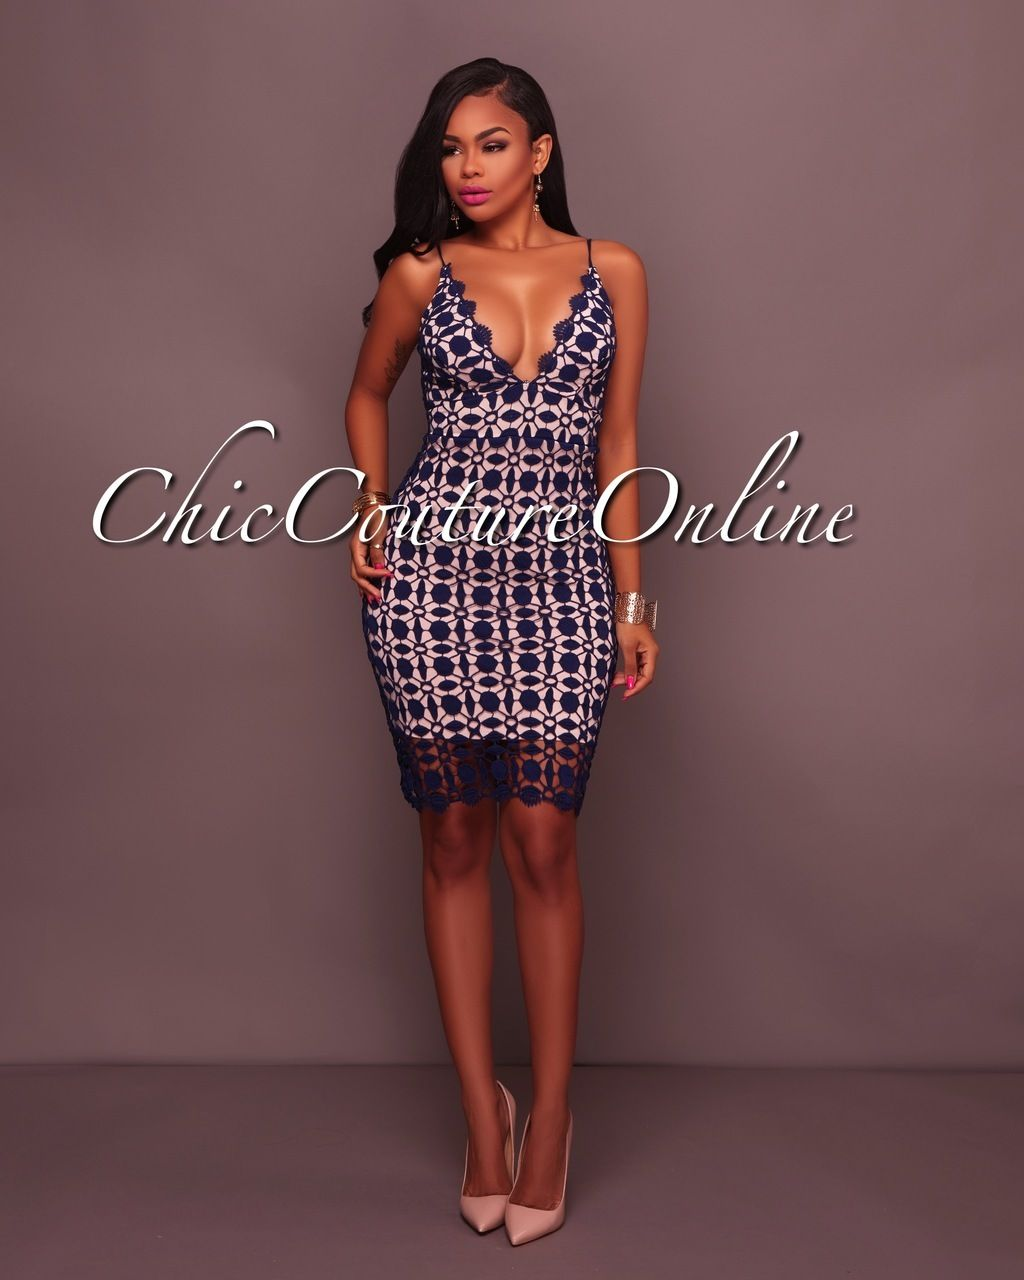 Chic couture online fancy navyblue crochet nude dress